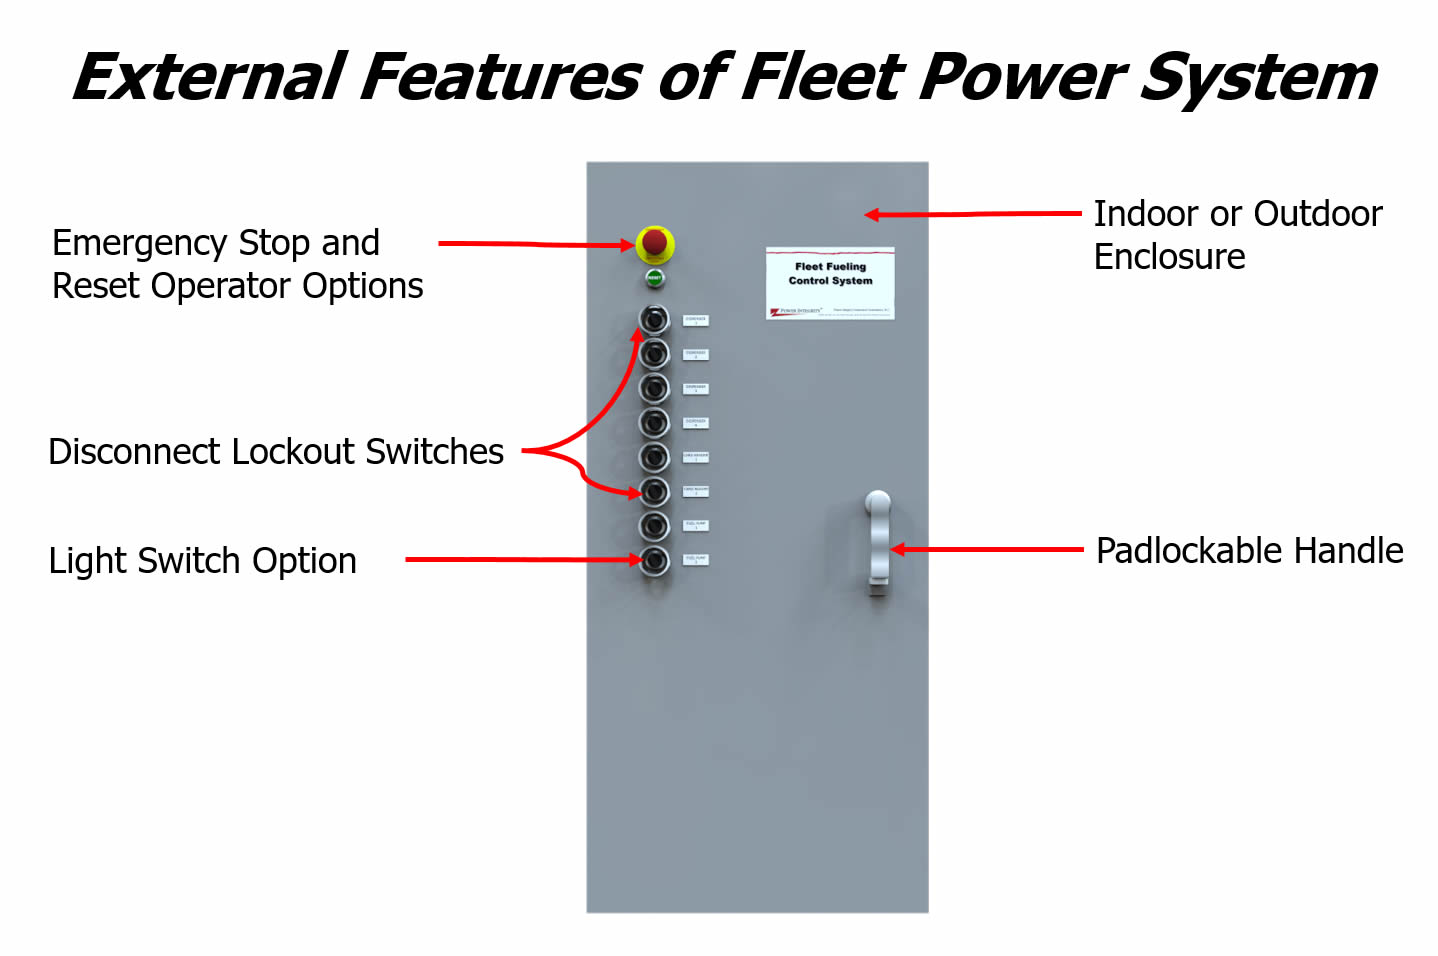 Power Integrity Fleet Power System External Features